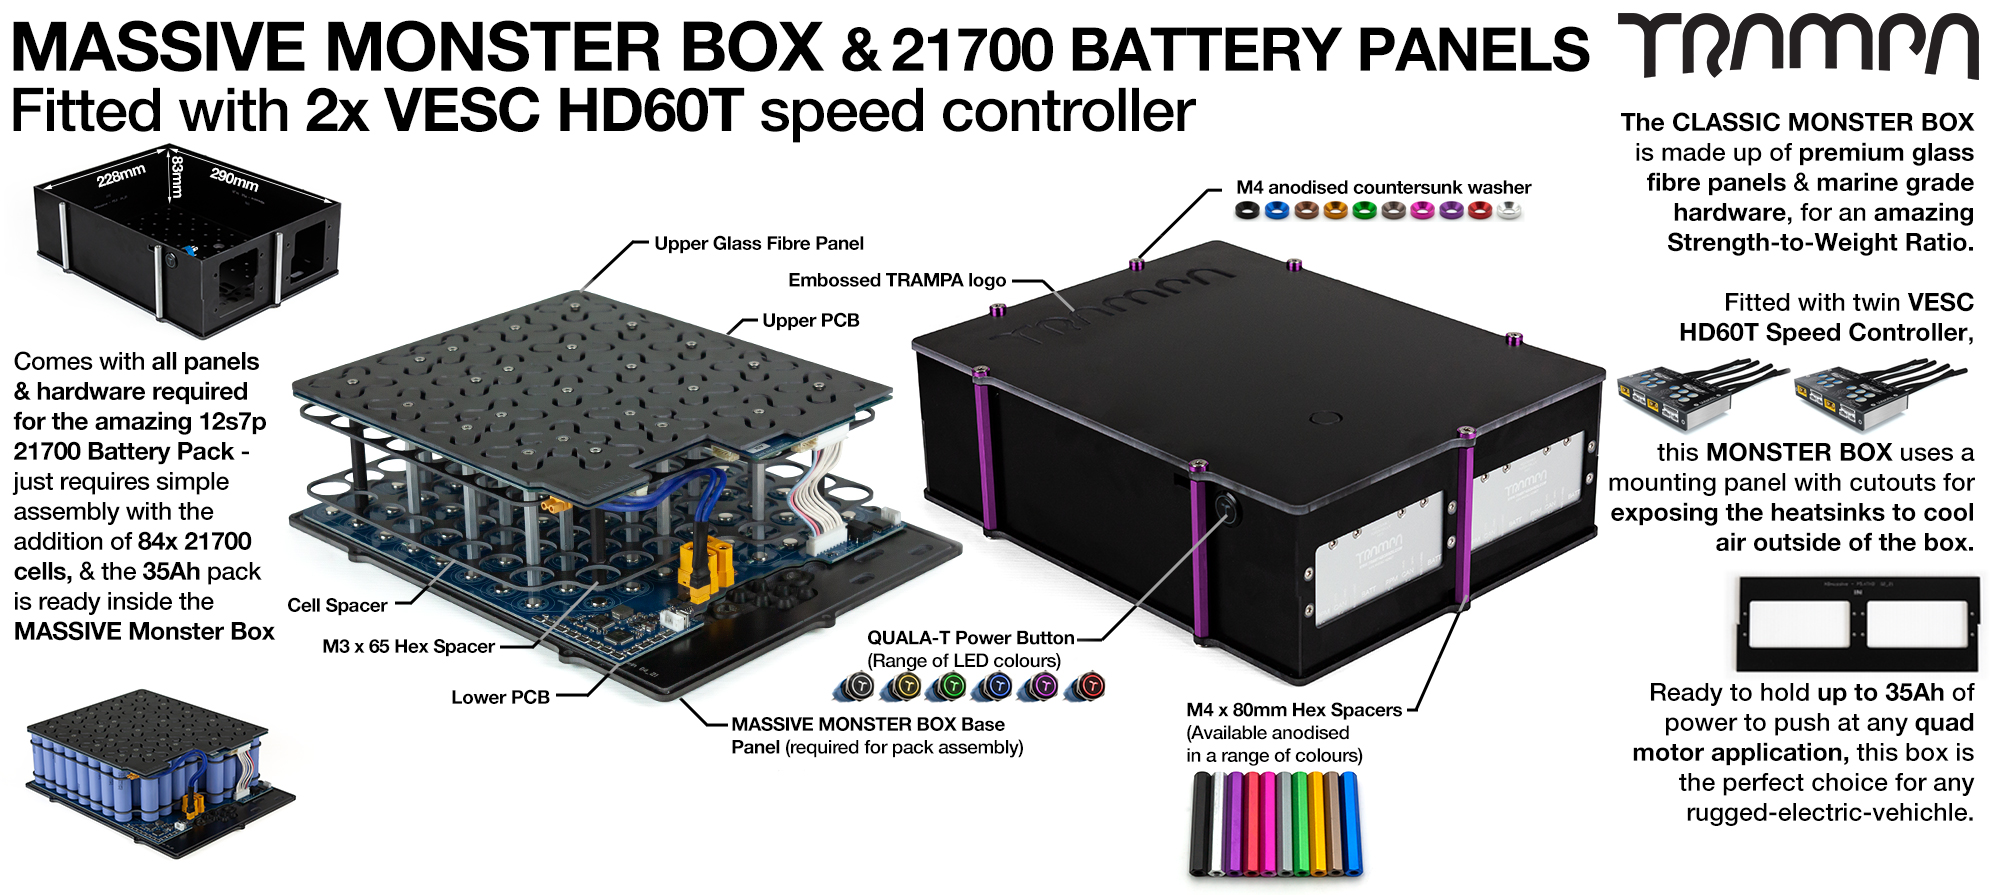 21700 MASSIVE MONSTER Box with 21700 PCB Pack with 2x VESC HD-60Twin - NO CELLS